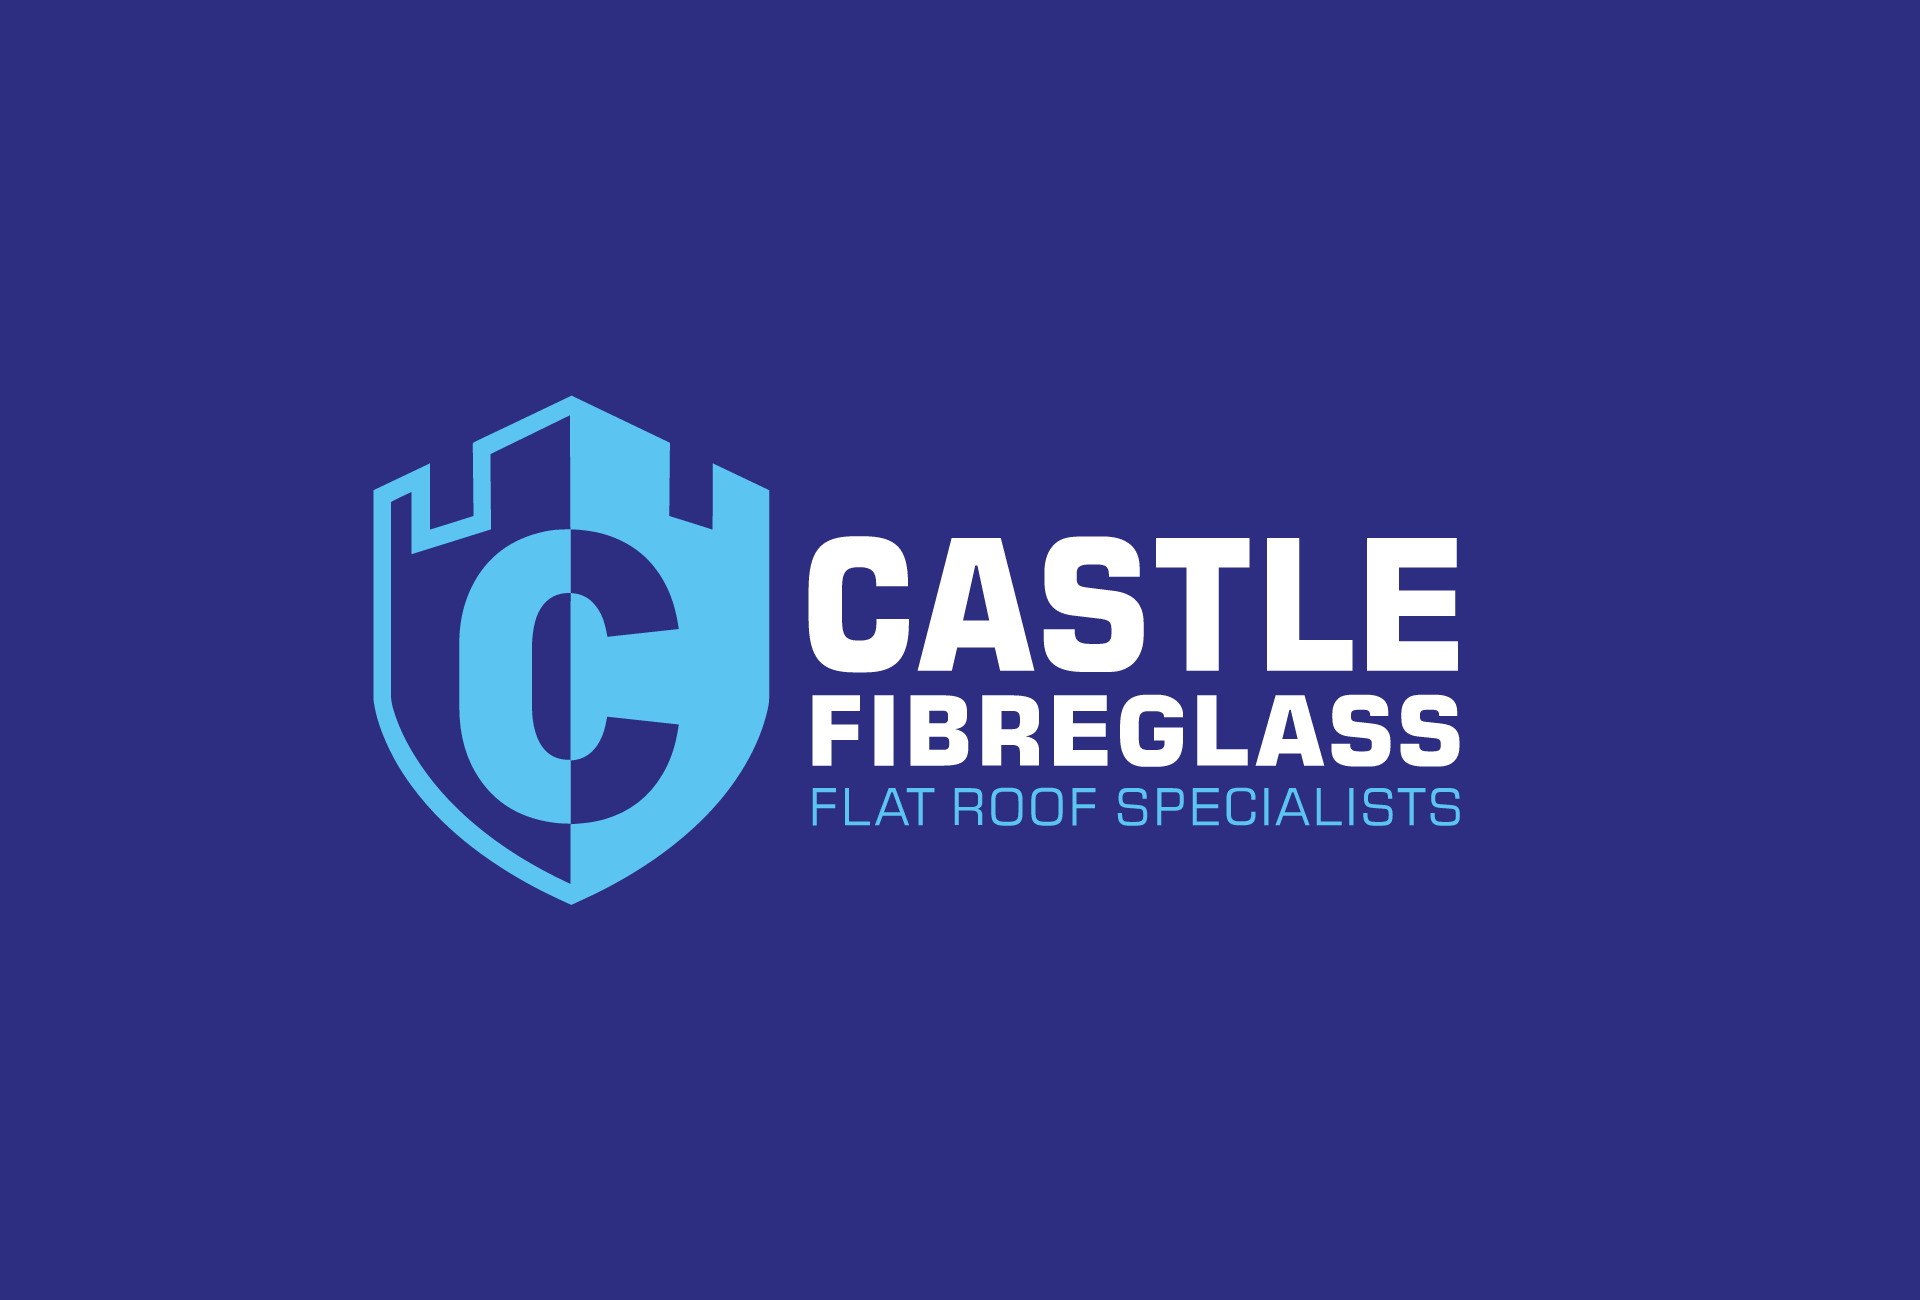 Castle Fibreglass logo design and branding